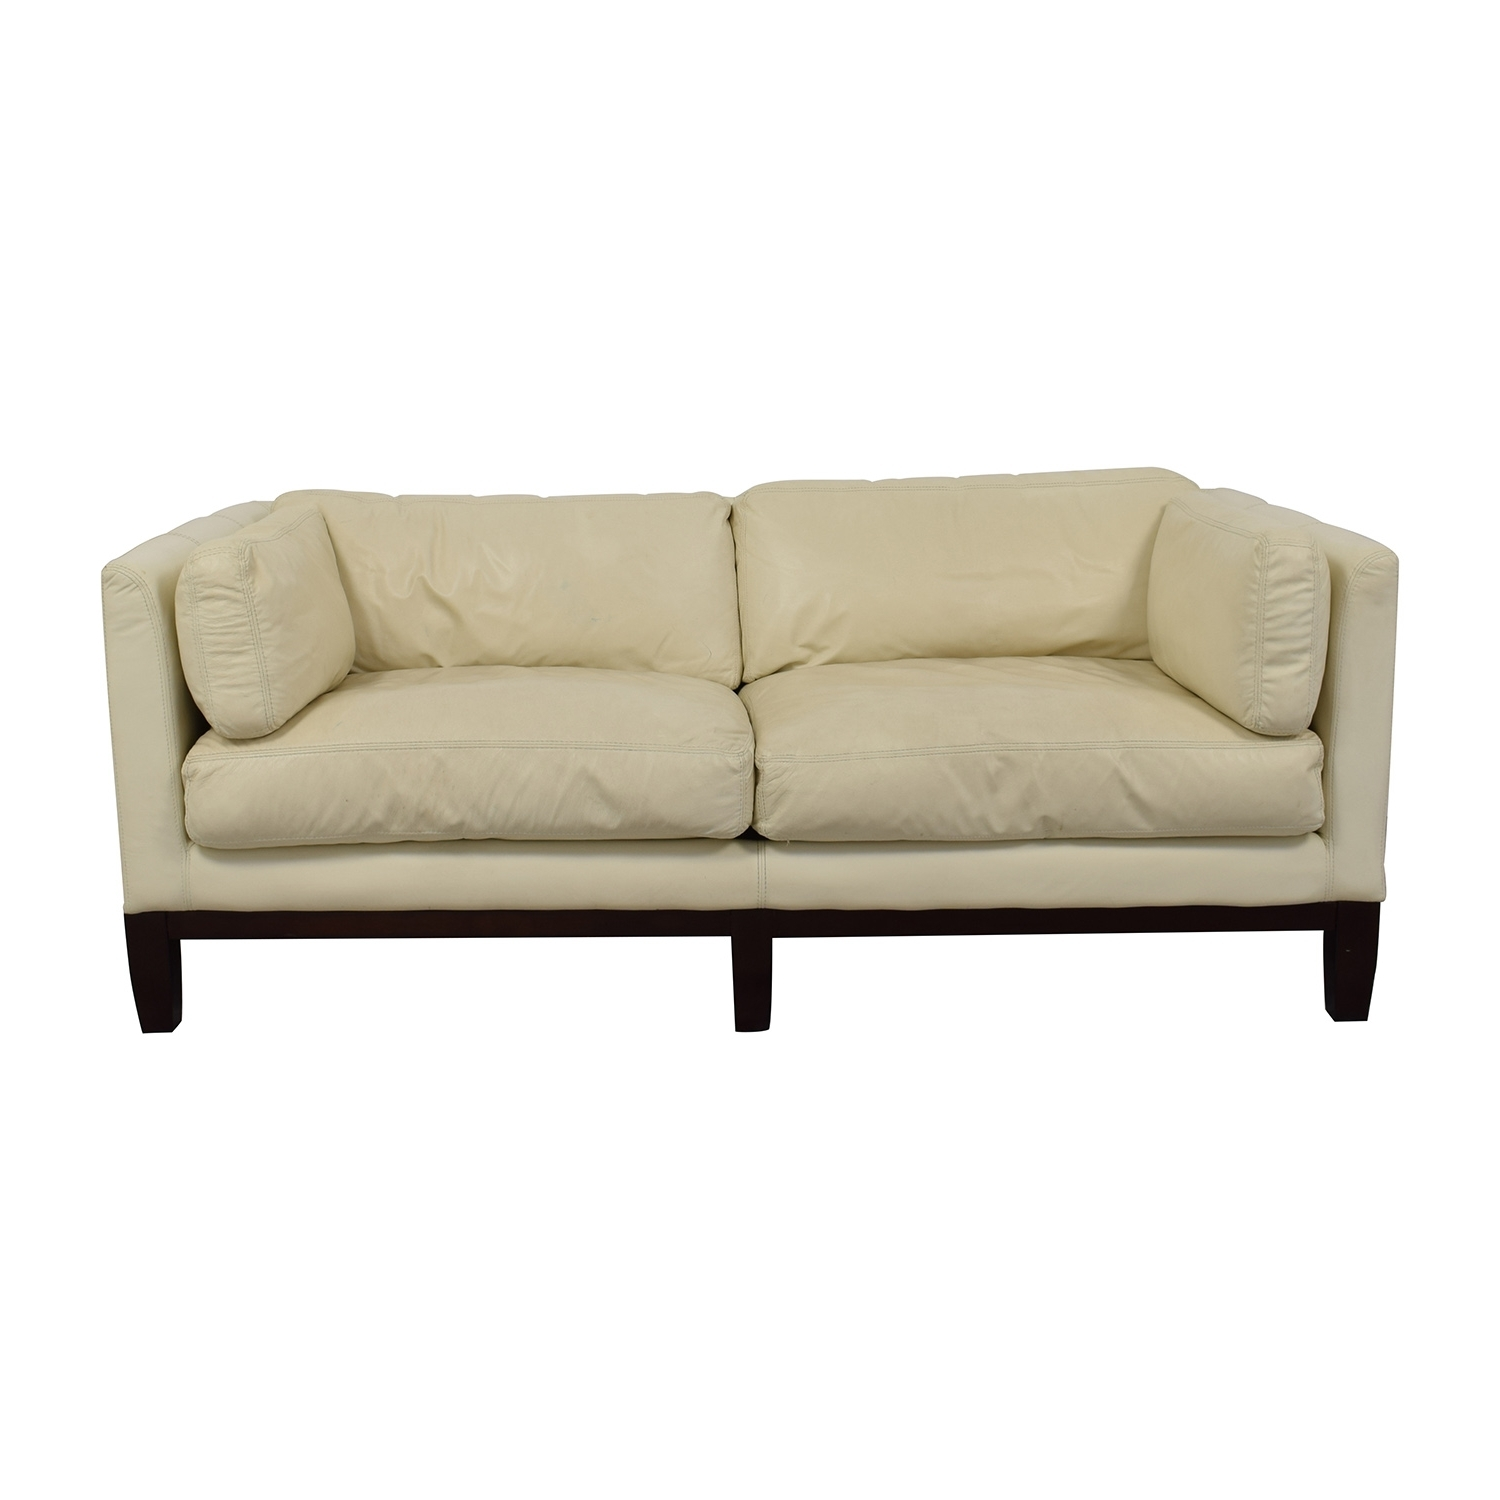 [%72% Off – Decoro Decoro Off White Leather Sofa / Sofas With 2019 Off White Leather Sofas|Off White Leather Sofas Pertaining To Widely Used 72% Off – Decoro Decoro Off White Leather Sofa / Sofas|Well Liked Off White Leather Sofas Within 72% Off – Decoro Decoro Off White Leather Sofa / Sofas|Famous 72% Off – Decoro Decoro Off White Leather Sofa / Sofas Regarding Off White Leather Sofas%] (View 3 of 20)